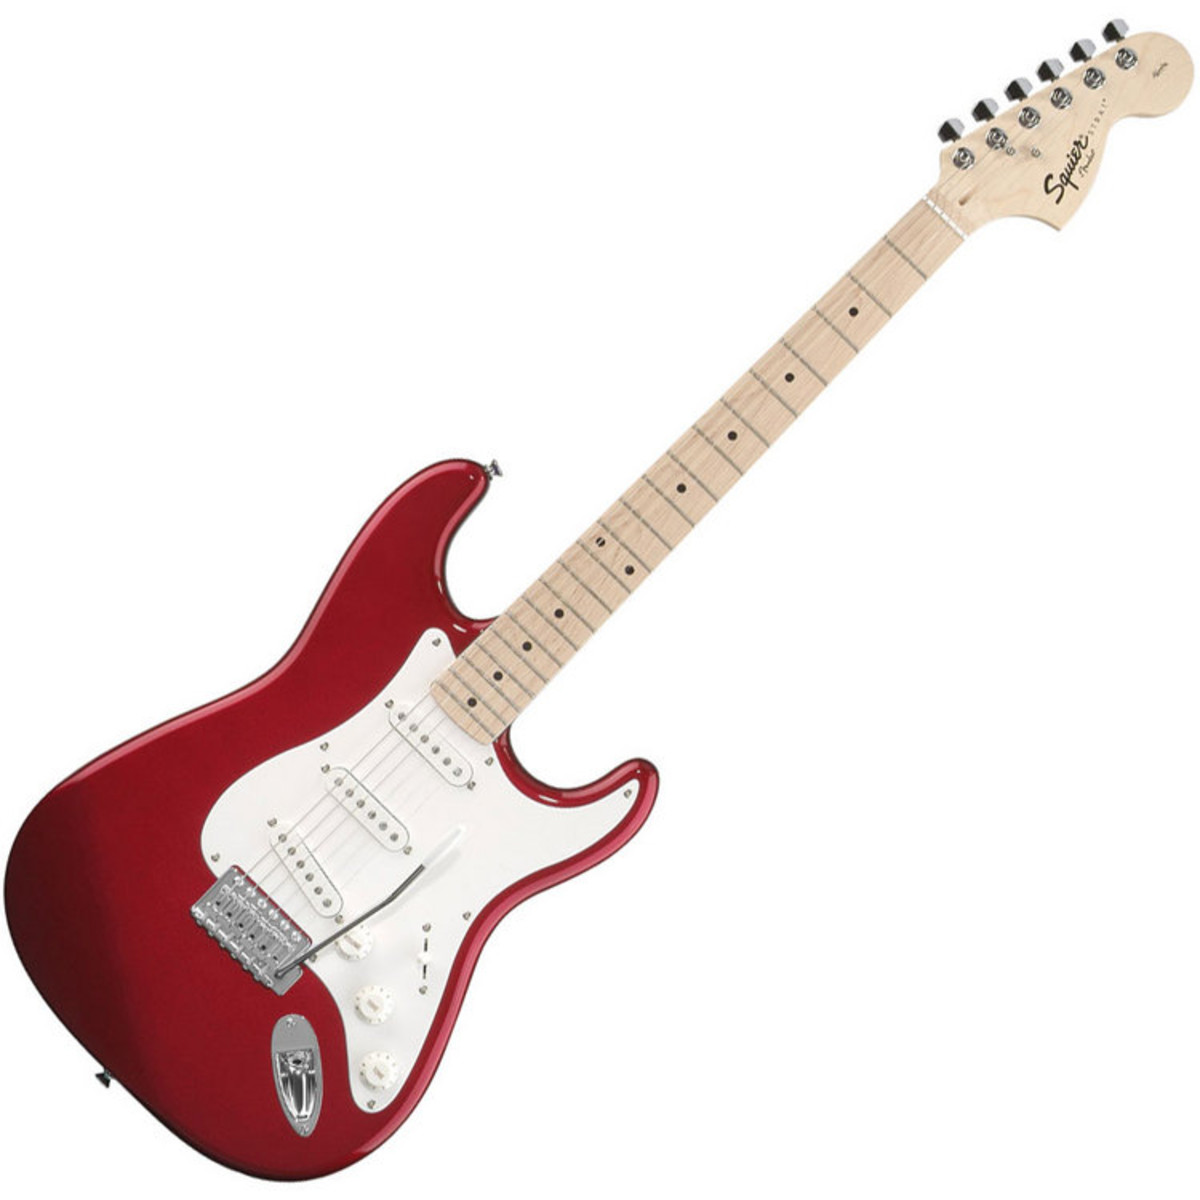 disc squier by fender affinity stratocaster metallic red at. Black Bedroom Furniture Sets. Home Design Ideas